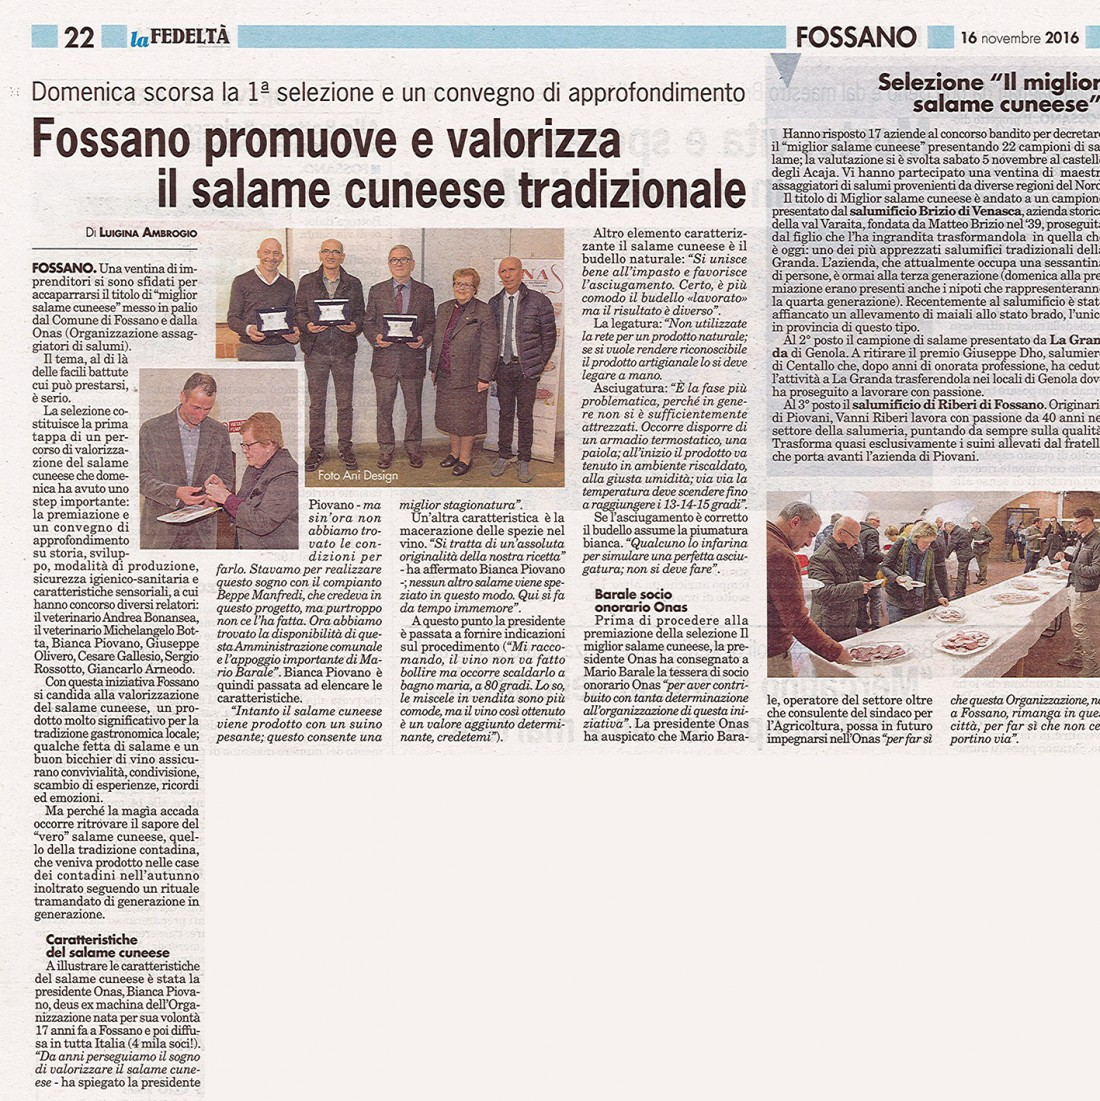 Fossano - Salame cuneese tradizionale